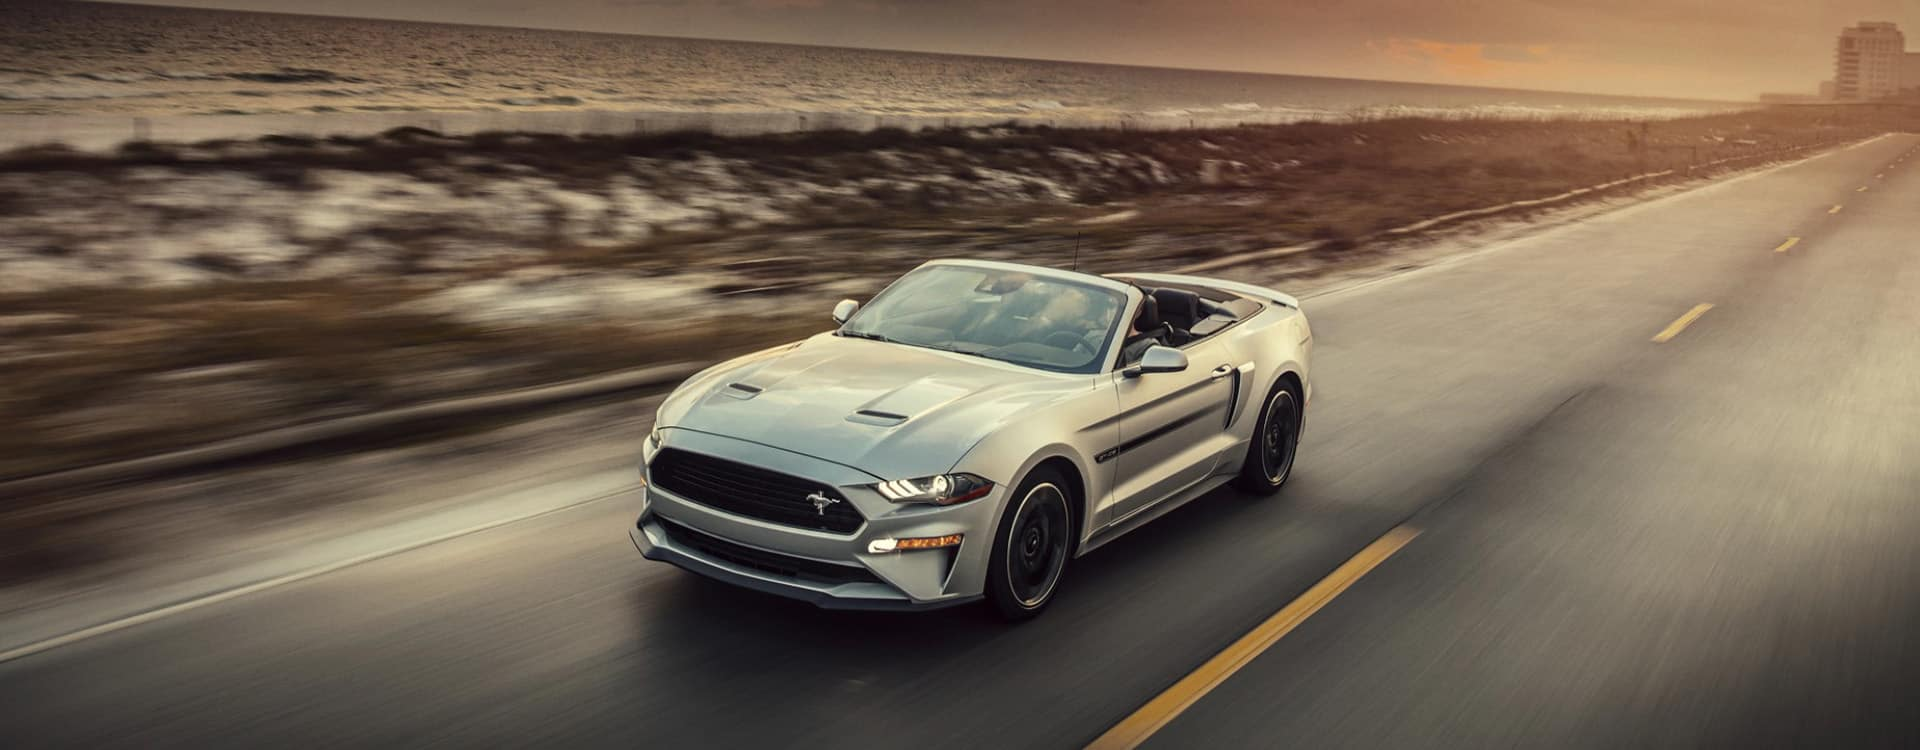 2021 Ford Mustang near St. Louis